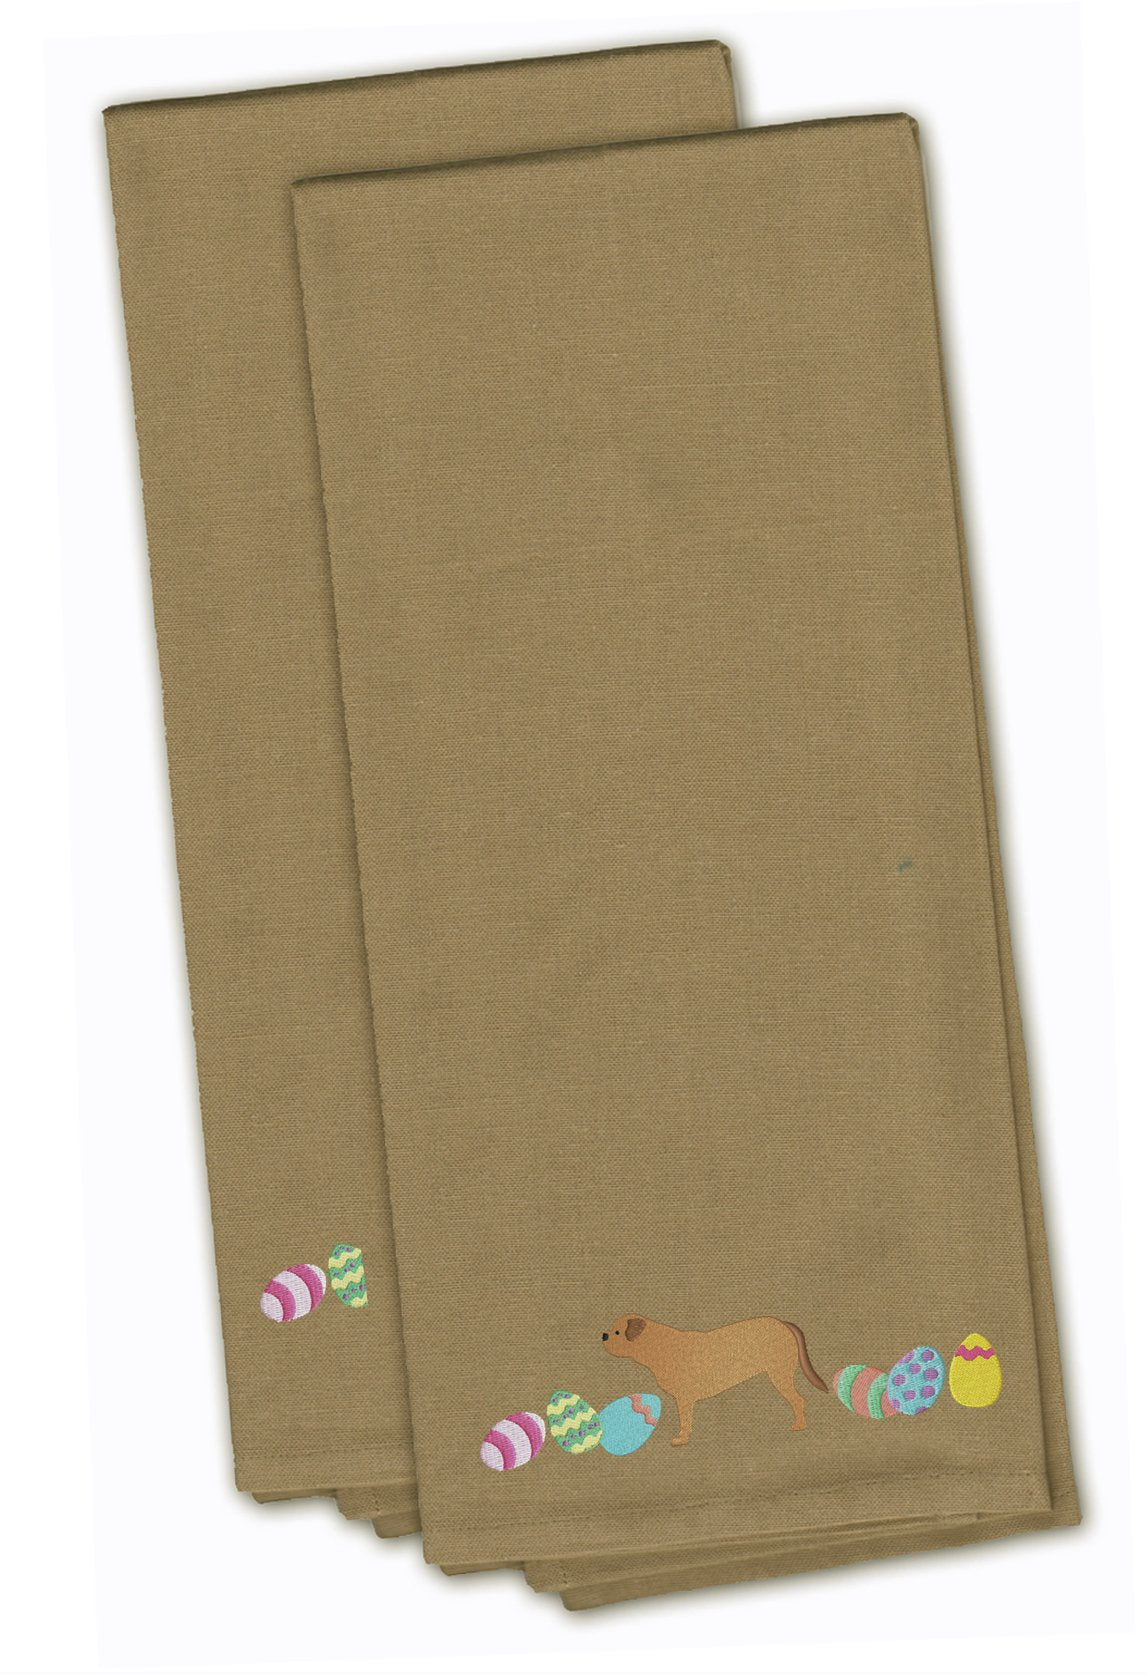 Dogue de Bordeaux Easter Tan Embroidered Kitchen Towel Set of 2 CK1635TNTWE by Caroline's Treasures